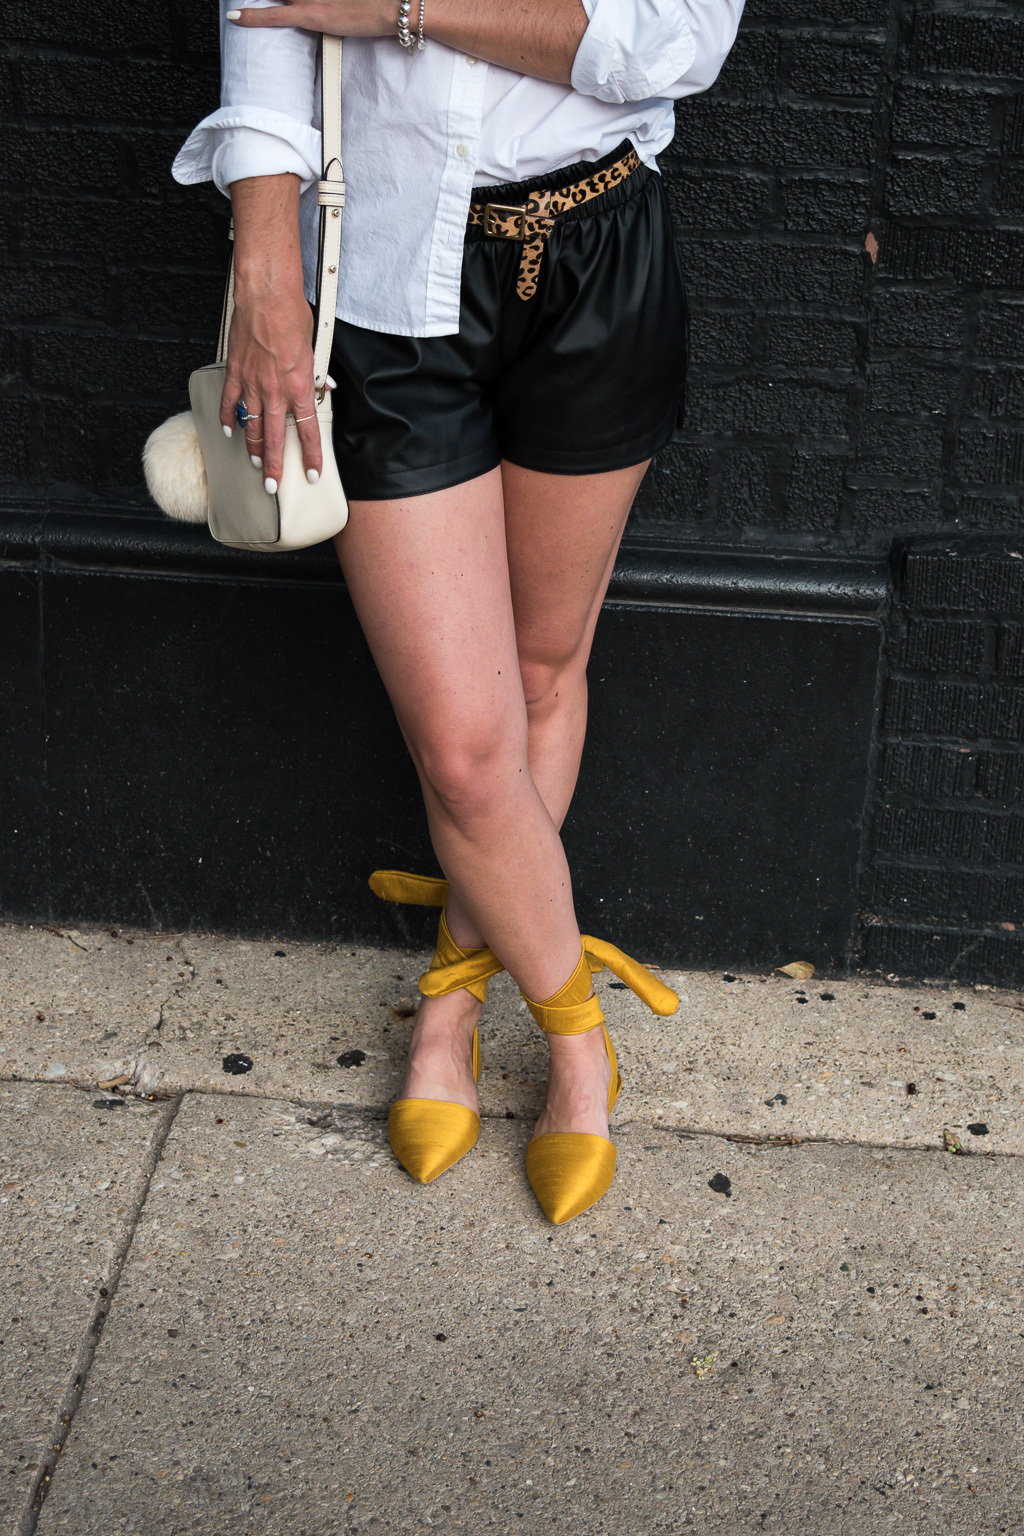 Transitioning to Fall with Faux Leather Shorts | J.Crew White Button Down Blouse, SheIn Faux Leather Shorts, Target Leapard Print Calf Hair Belt, Topshop Mustard Pointed Toe Lace Up Flats